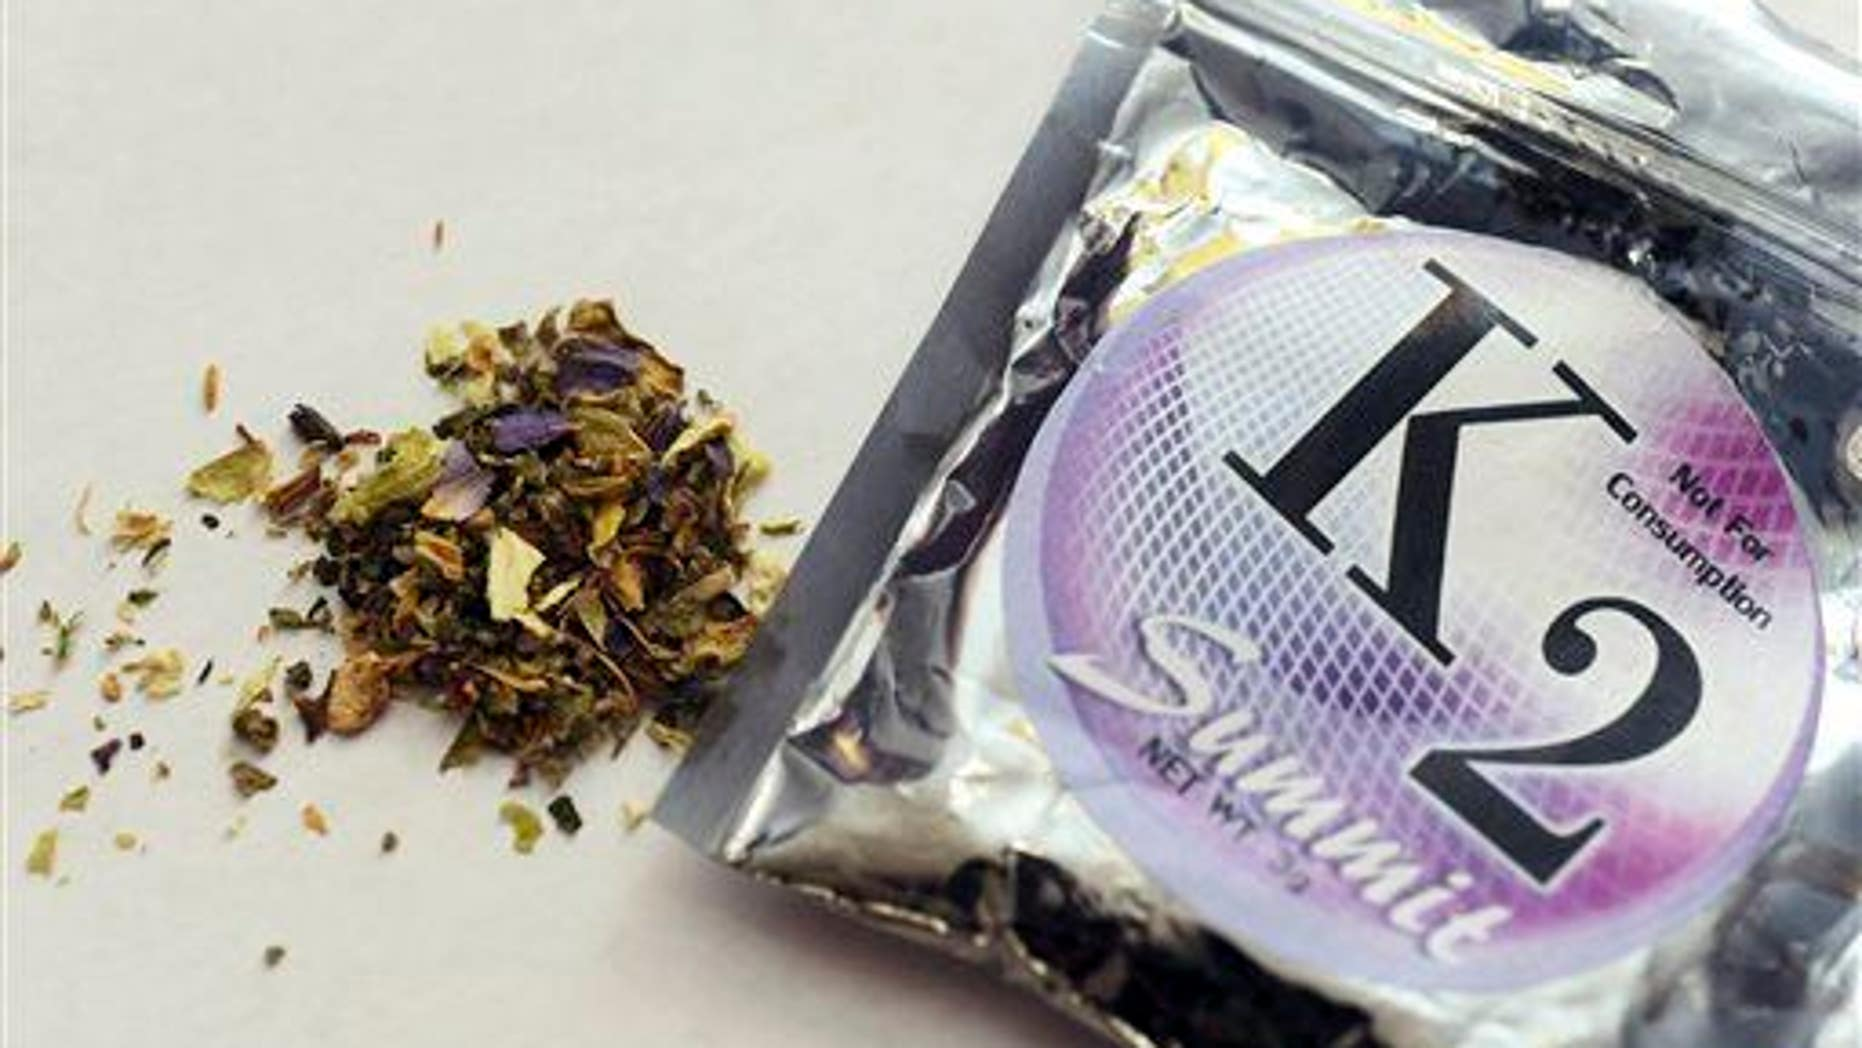 A package of synthetic marijuana, also known as Spice or K2.